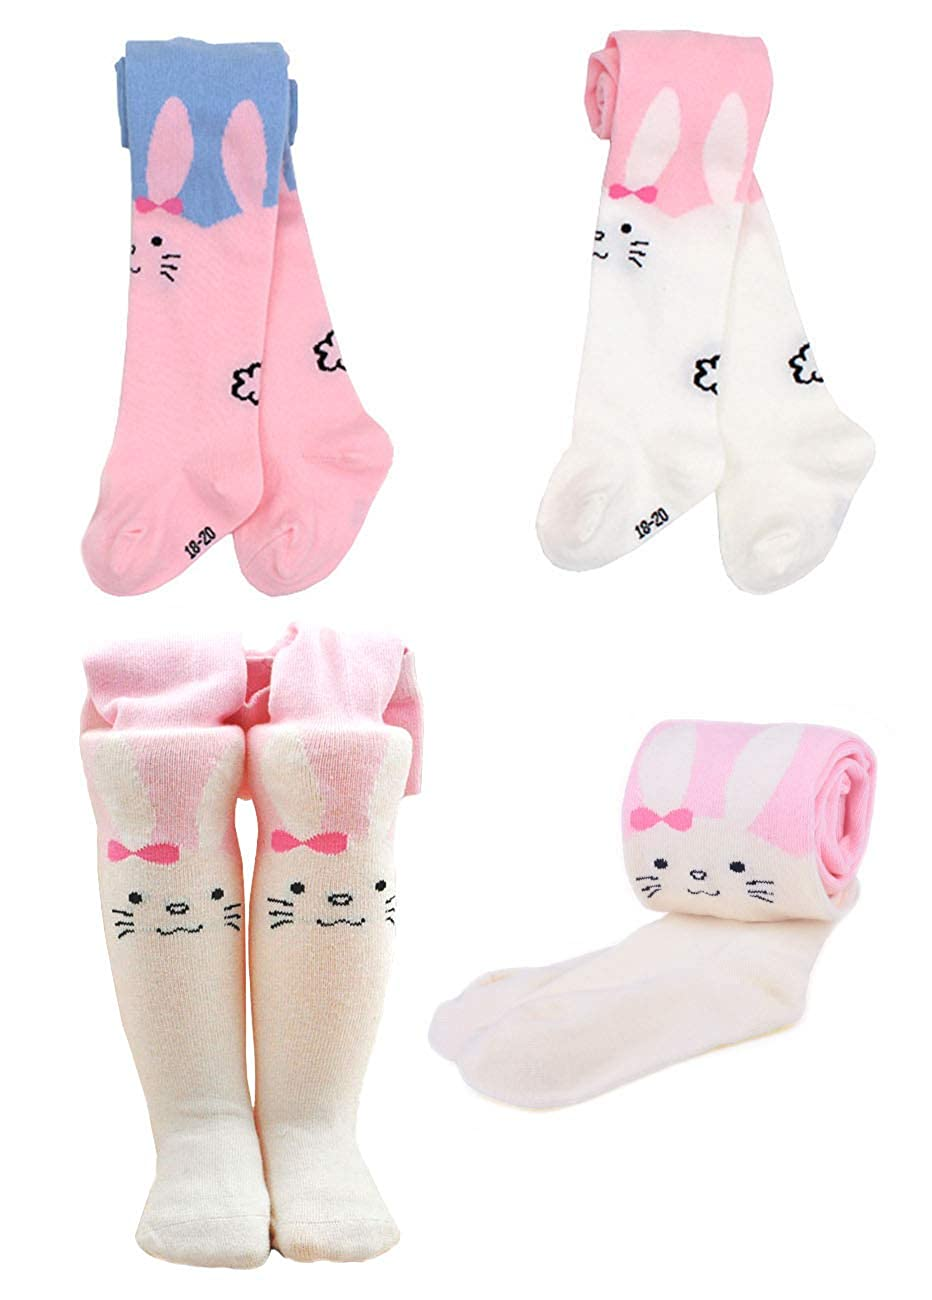 EIAY Shop Kids Seamless Cotton Tights Girls Pantyhose Dance Stockings 3-6 Years Cute